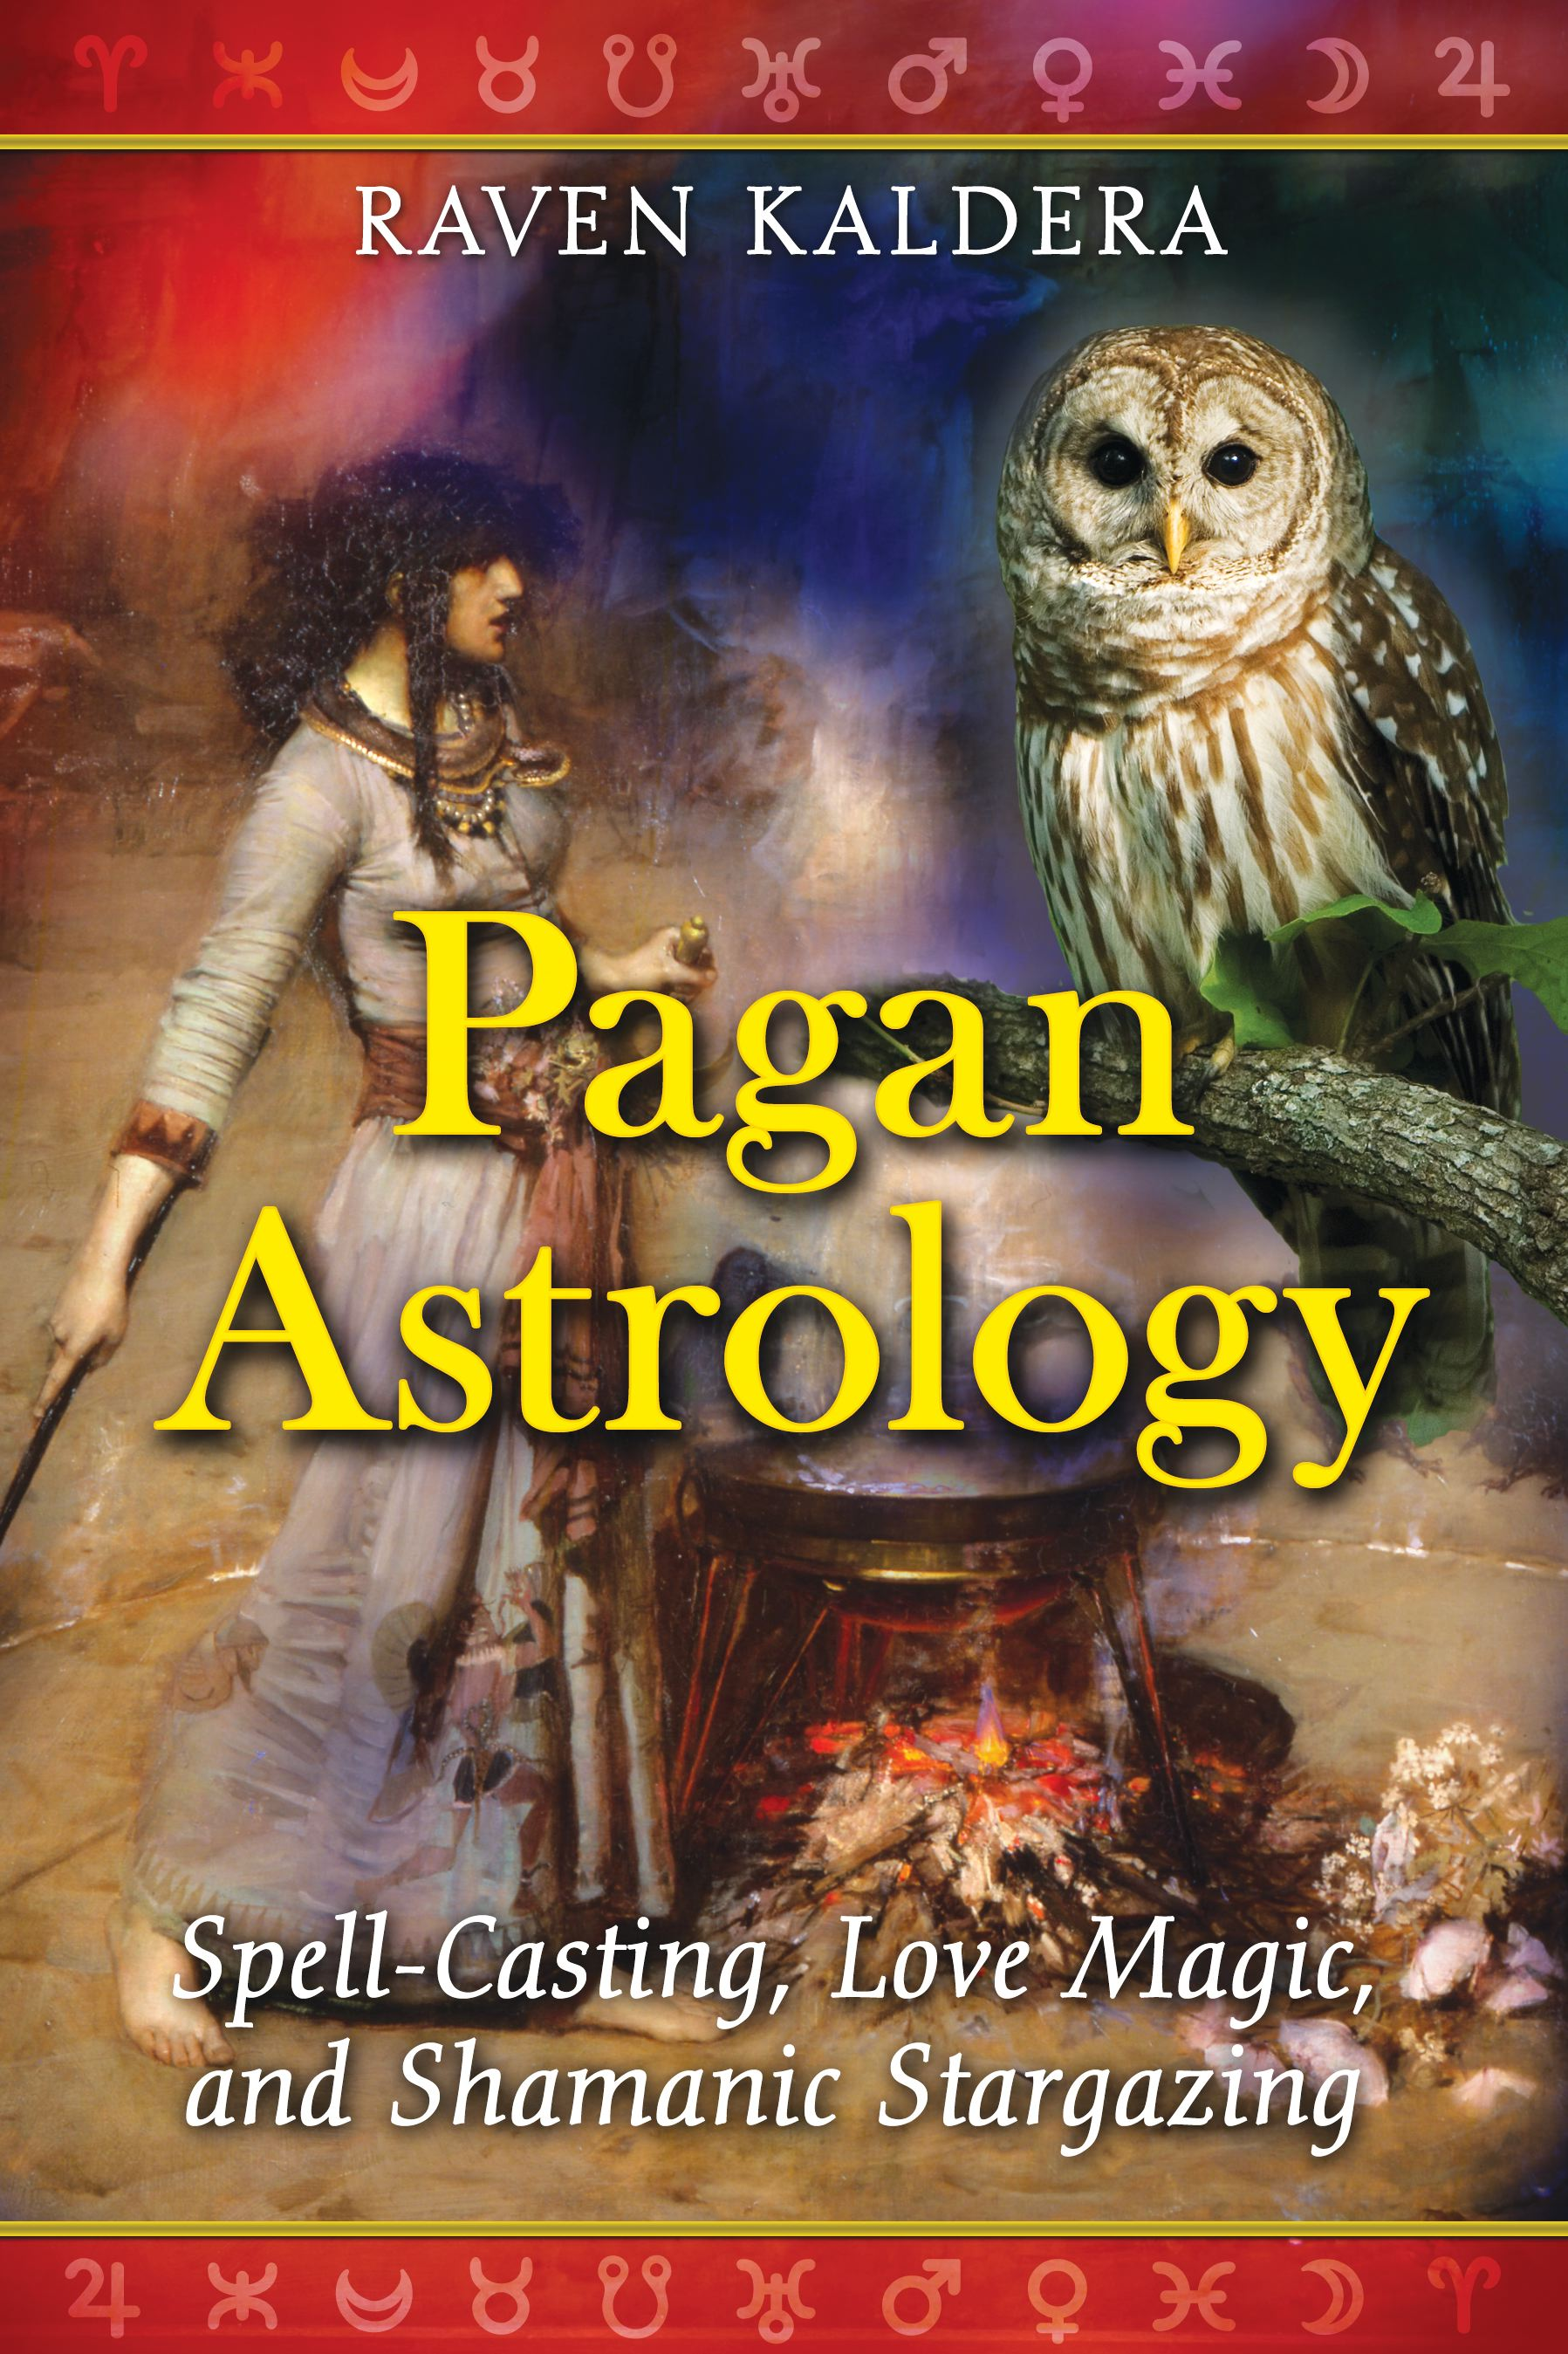 Pagan astrology 9781594773020 hr